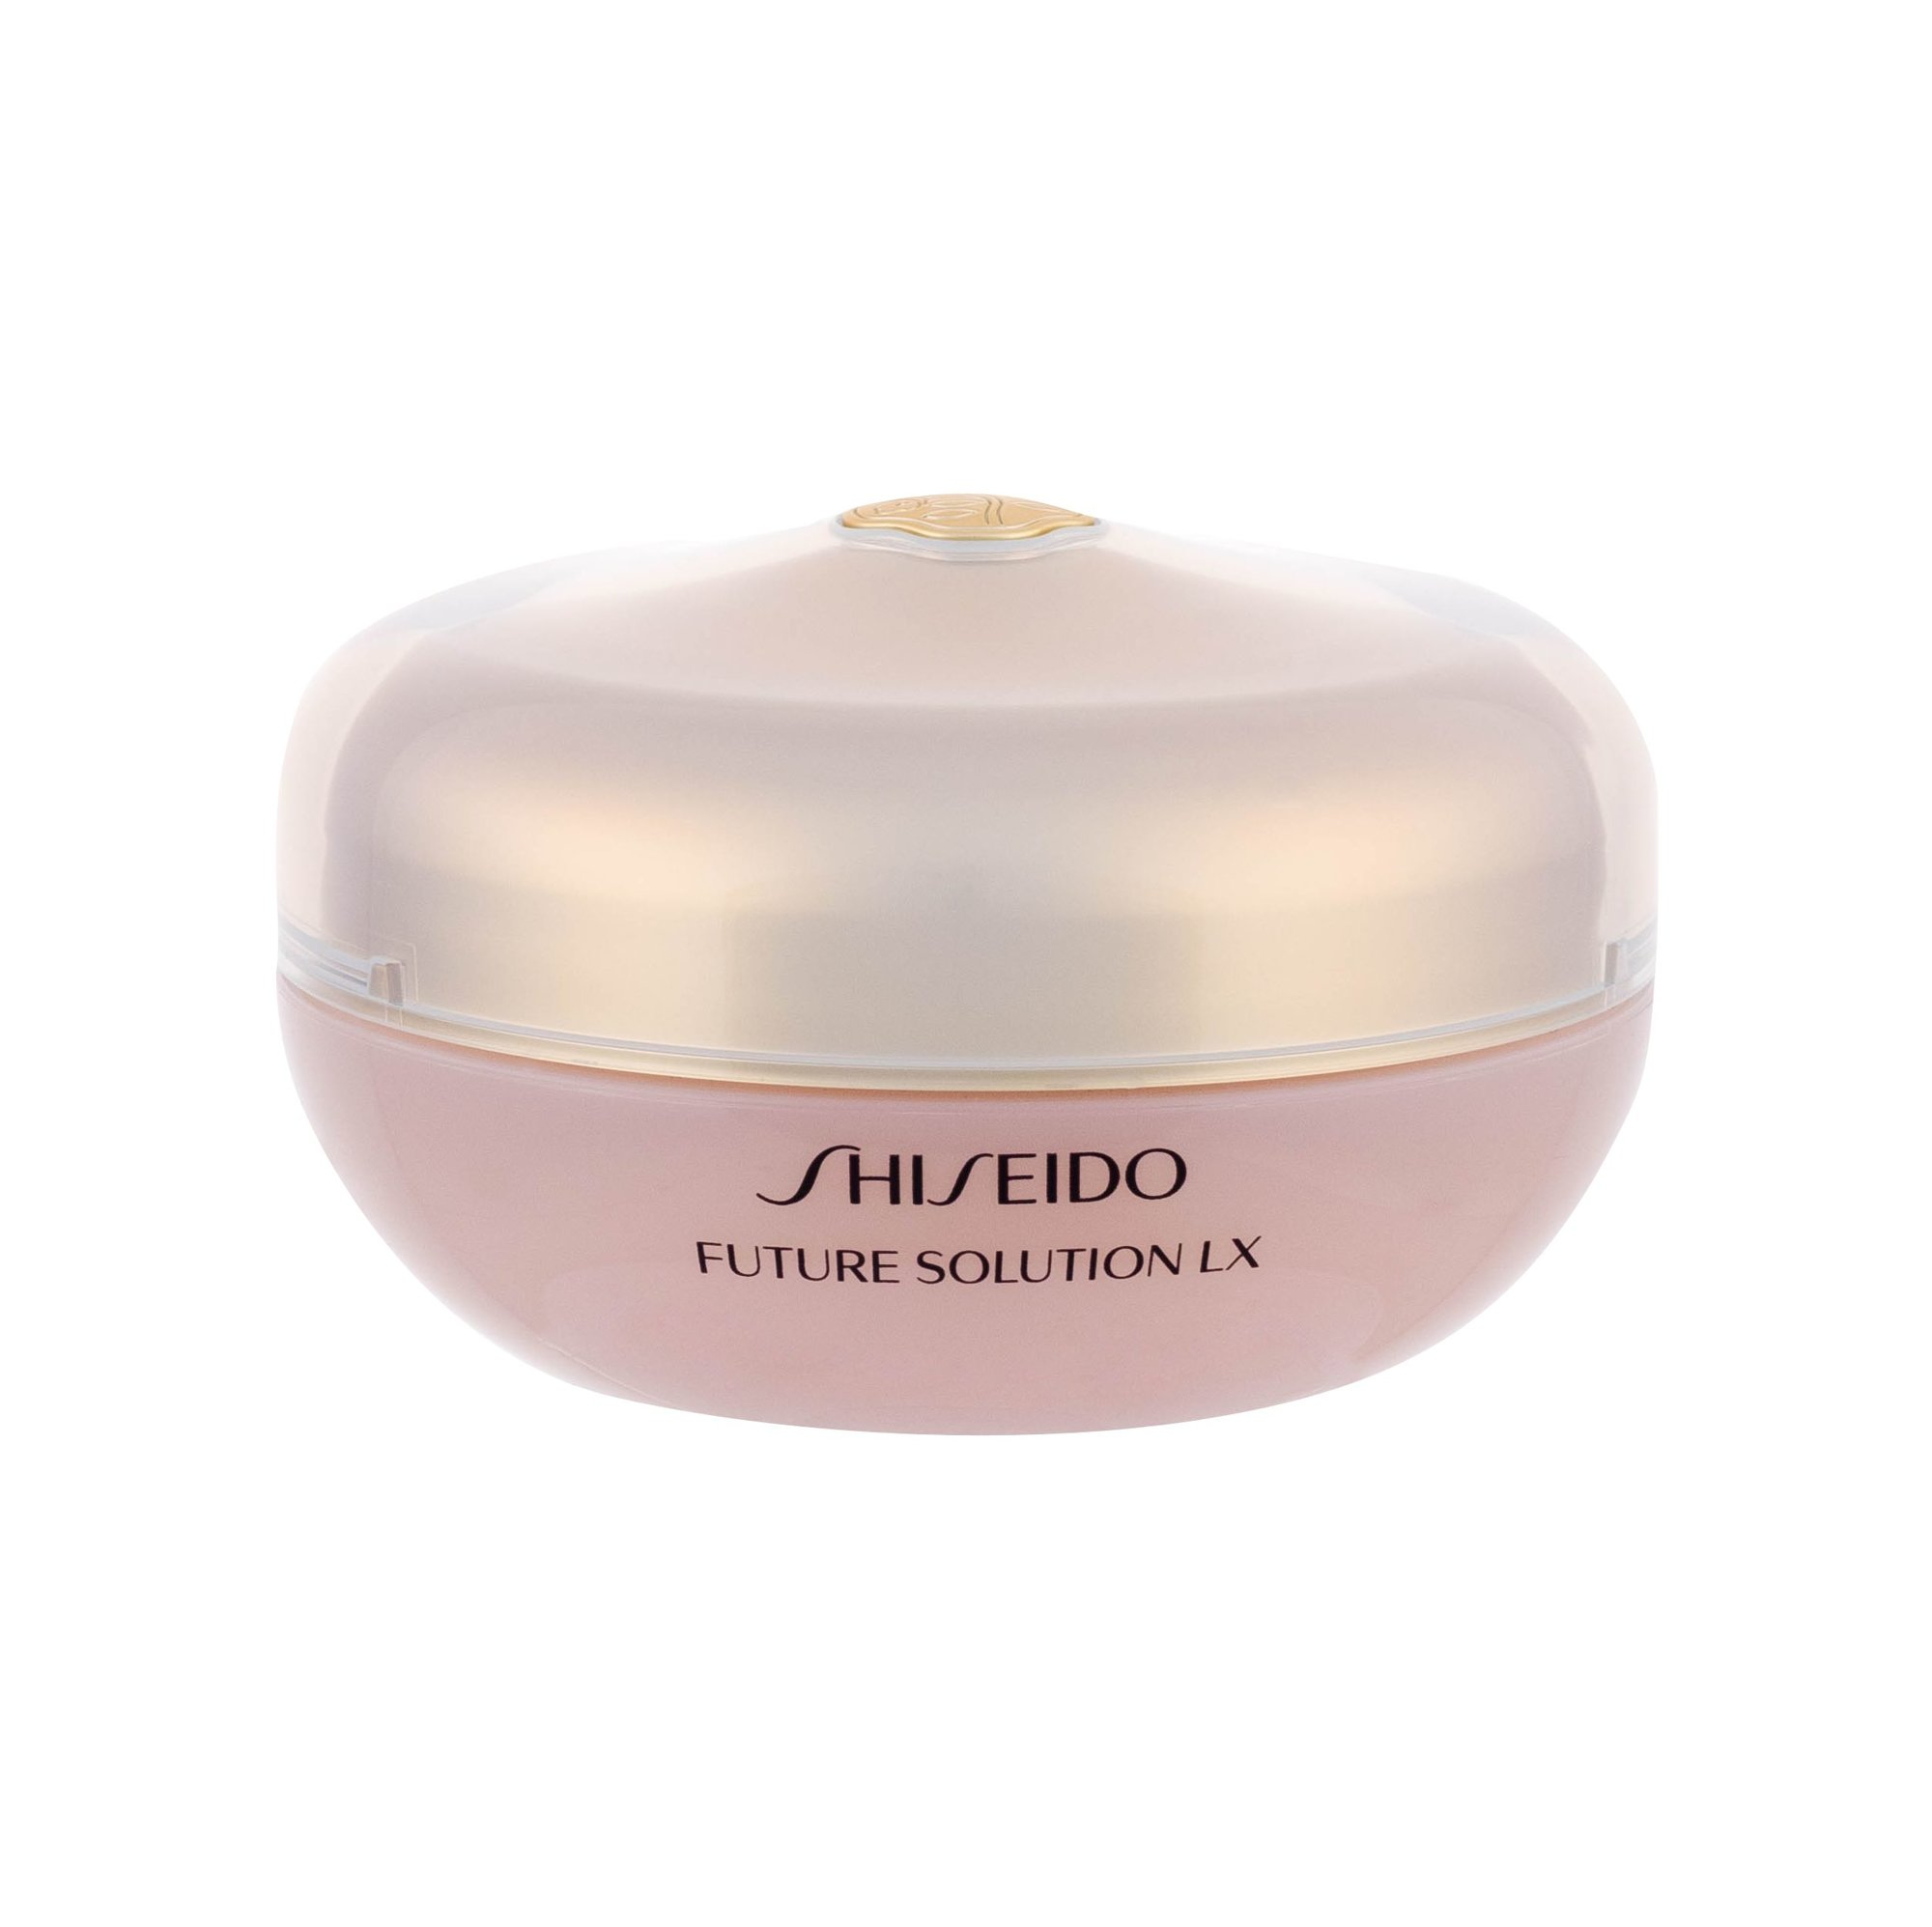 Shiseido Future Solution LX Powder 10ml Transparent